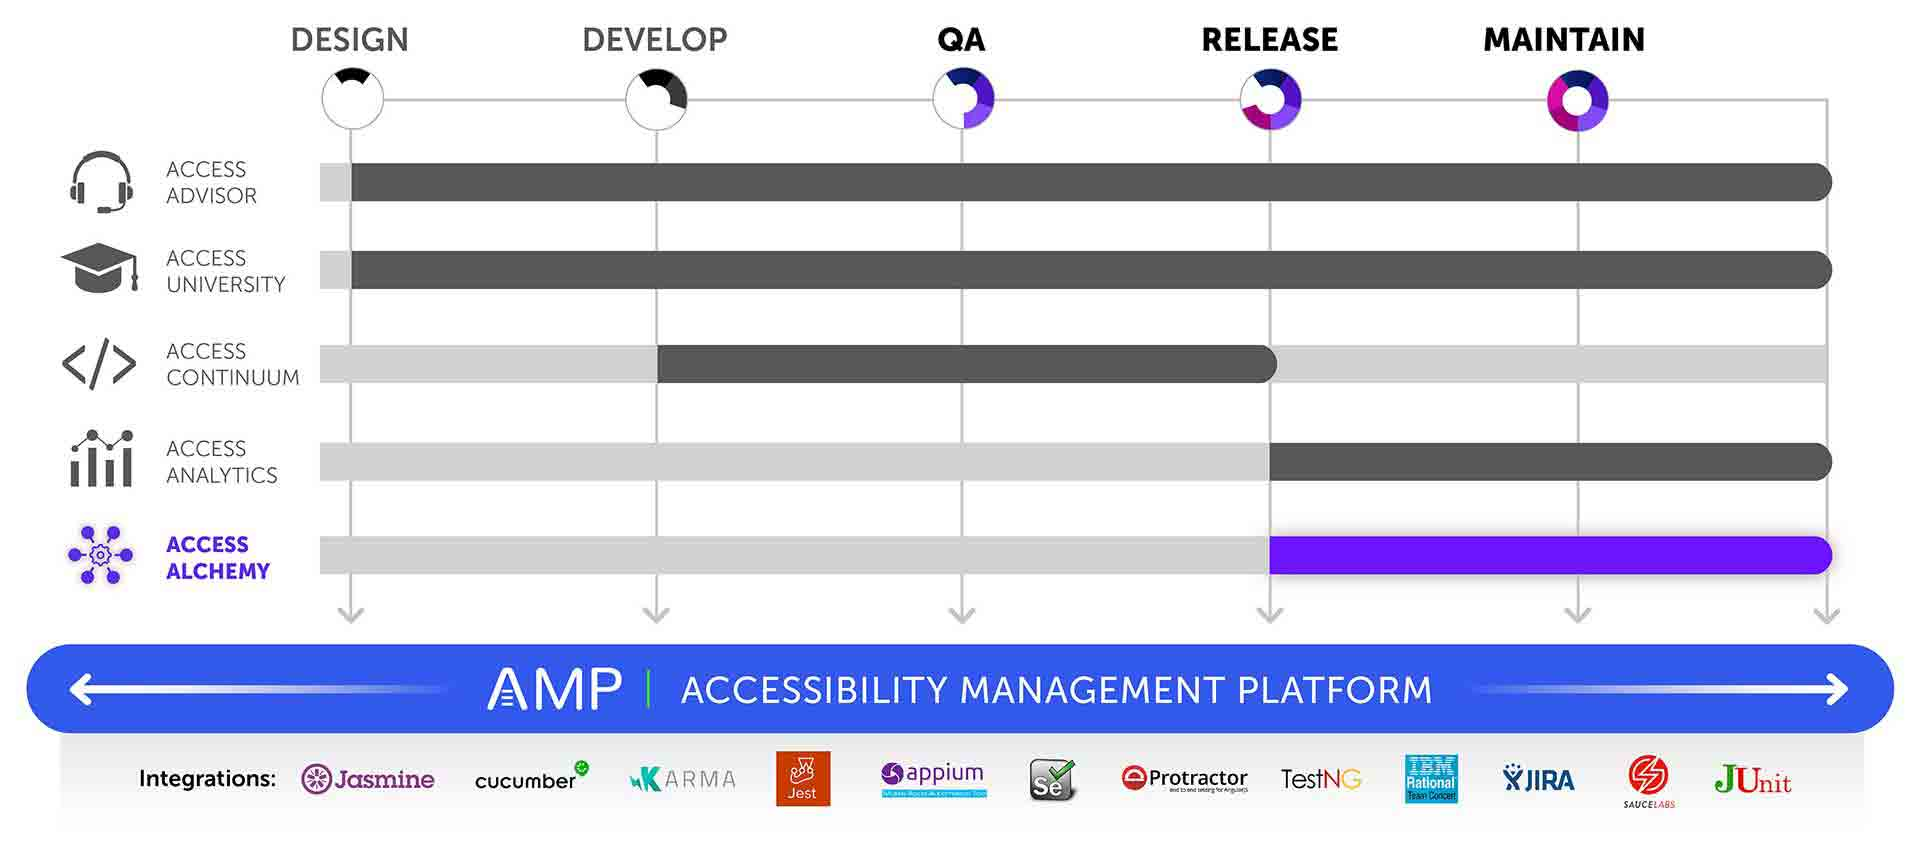 Graphic showing that AMP is the platform for all products and covers all phases of the software development lifecycle with integrations for Jasmine, Cucumber, Karma, Jest, Appium, Selenium, Protactor, TestNG, IBM Rational Team Concert, JIRA, JUnit, and Sauce Labs. Access Alchemy is shown highlighted and covers QA, Release, and Maintain stages as well.